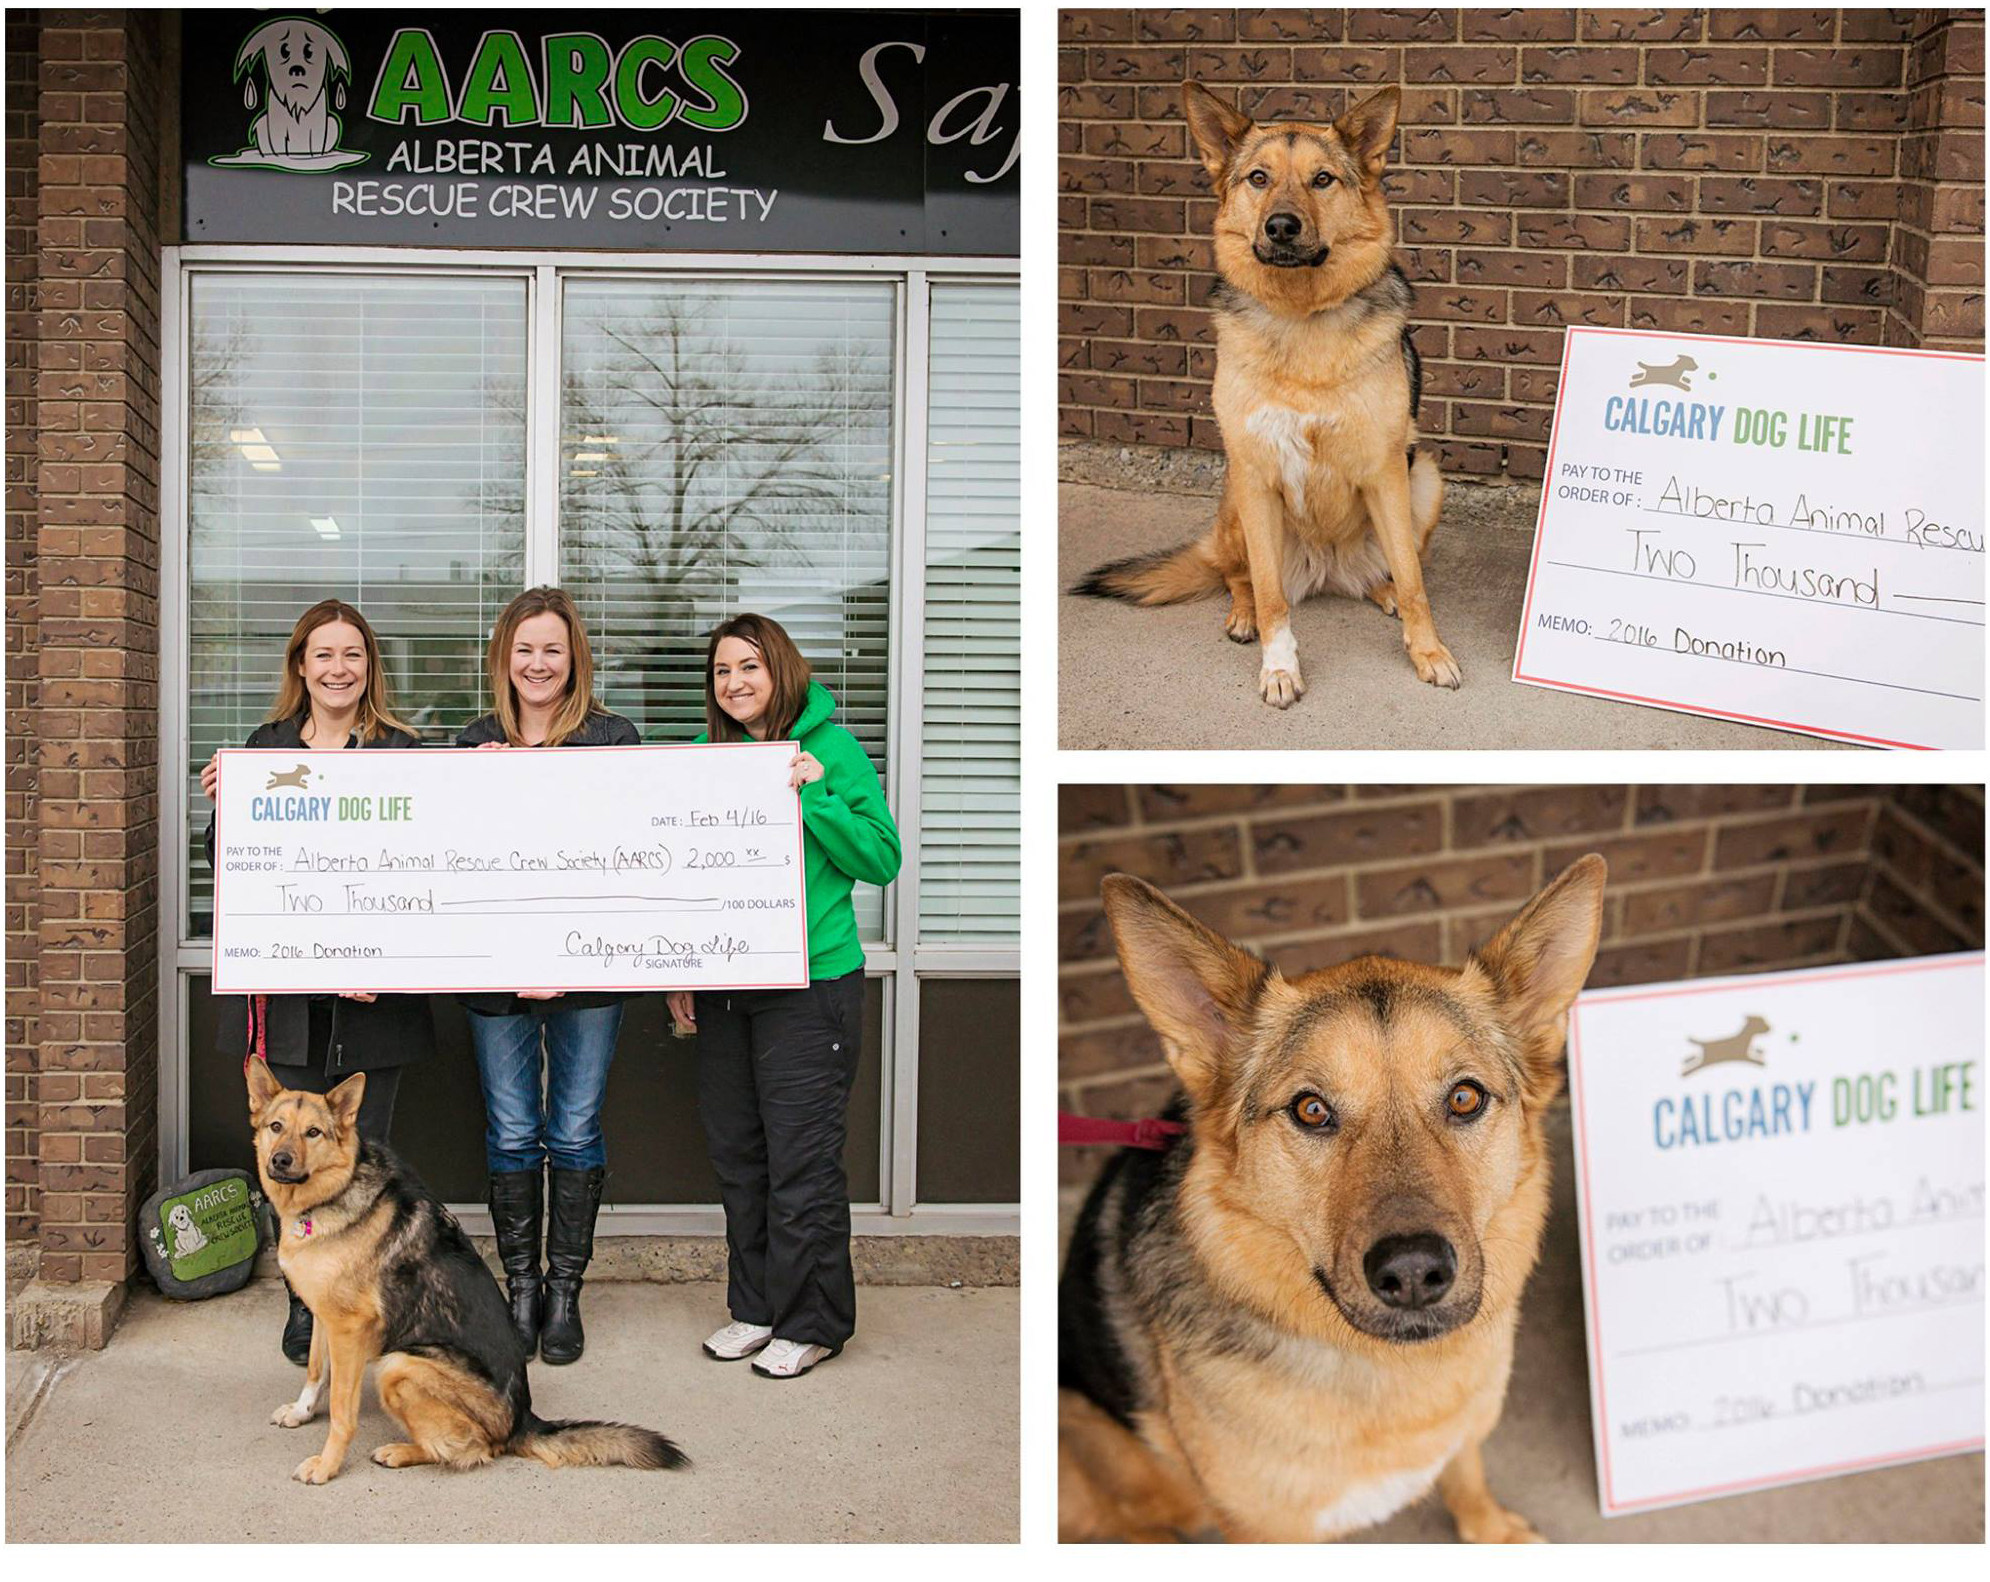 calgary-dog-donations-aarcs